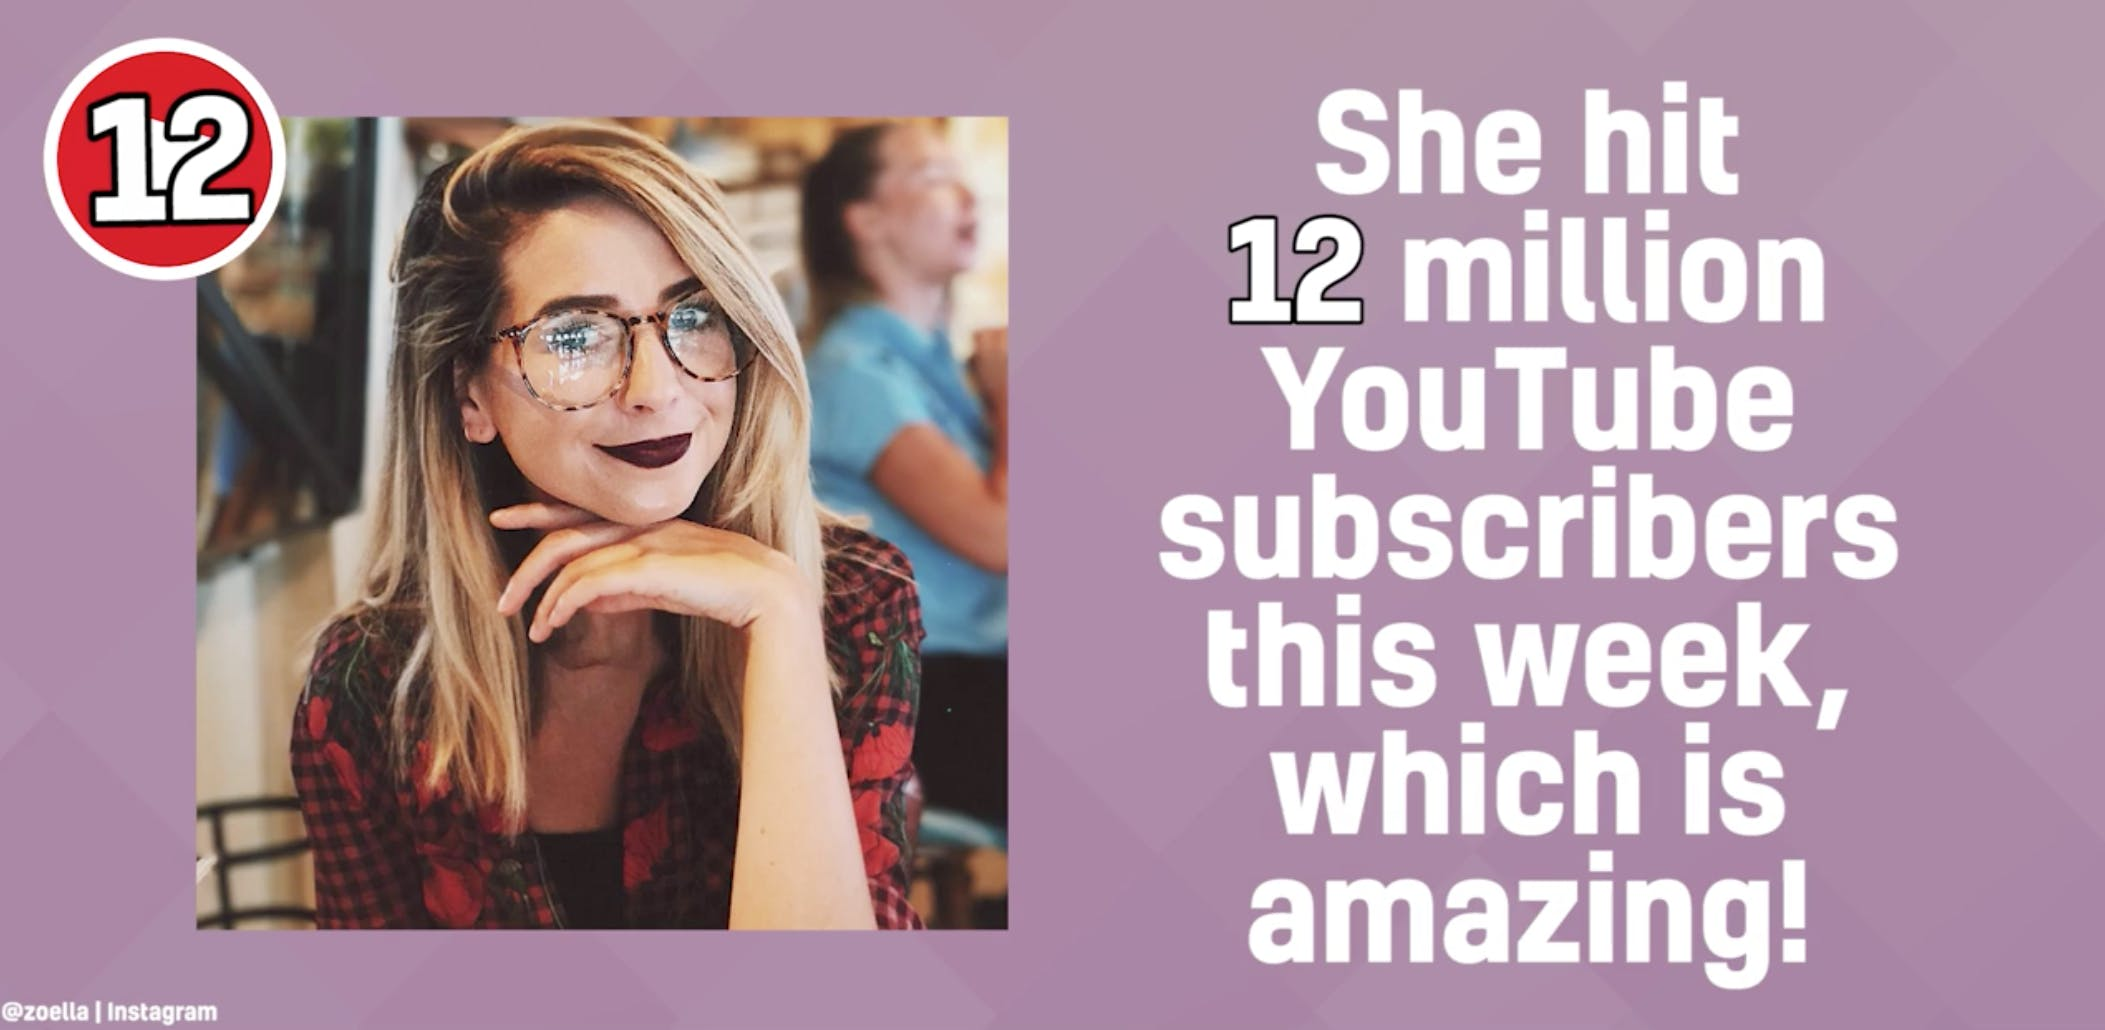 Zoella, YouTube beauty vlogger, has 12 million subscribers